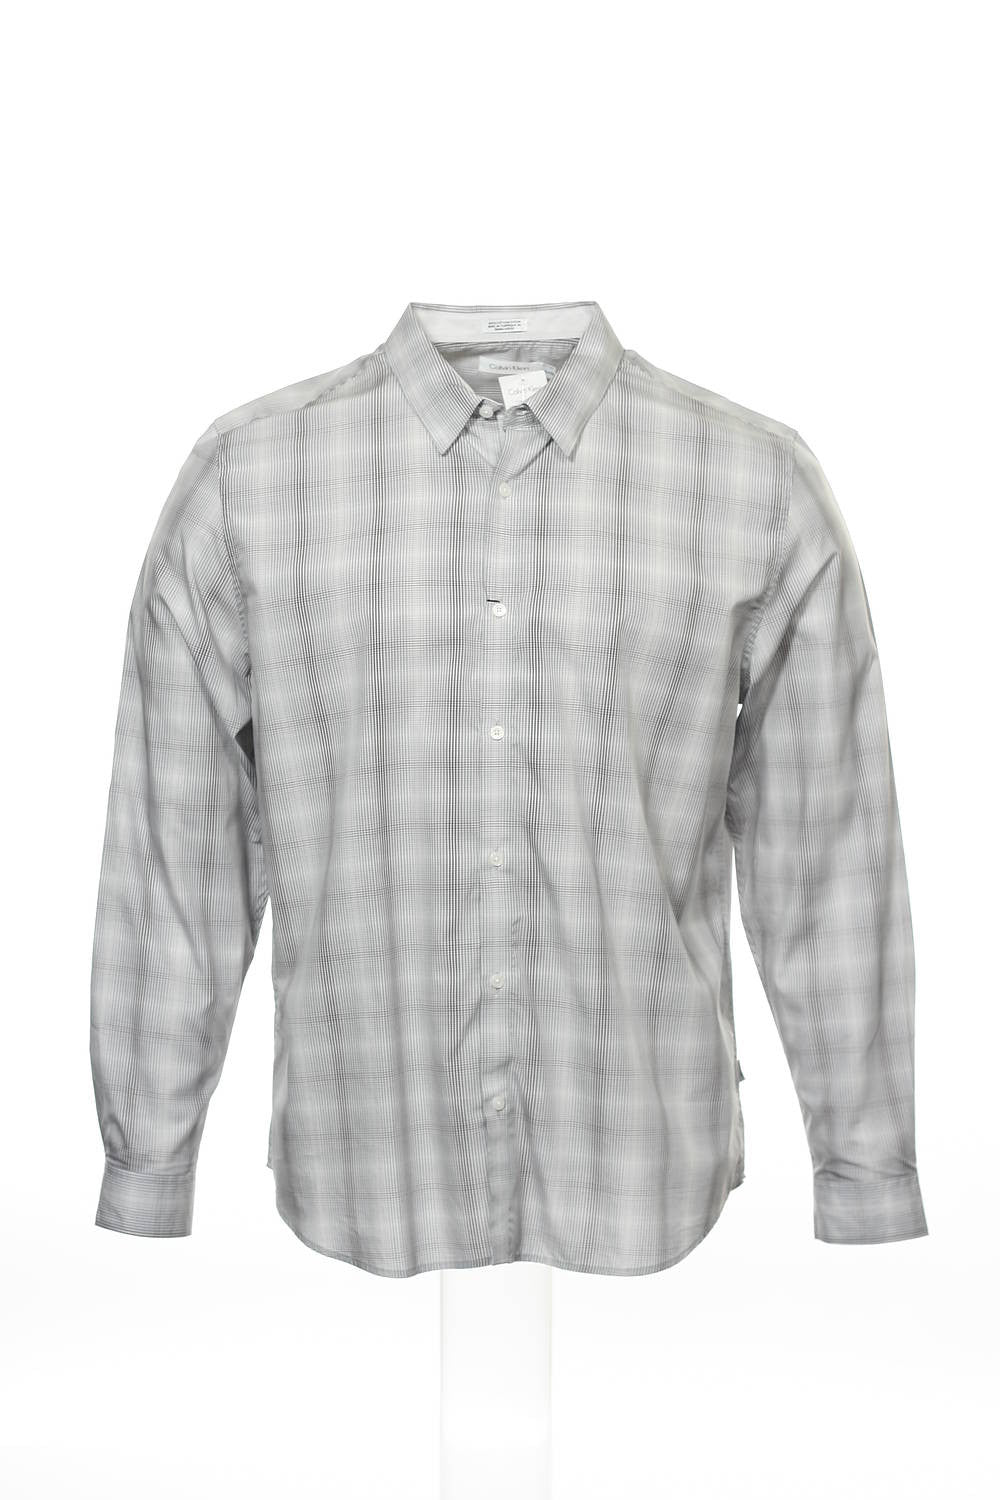 Calvin Klein Mens Light Gray Plaid Button Down Shirt